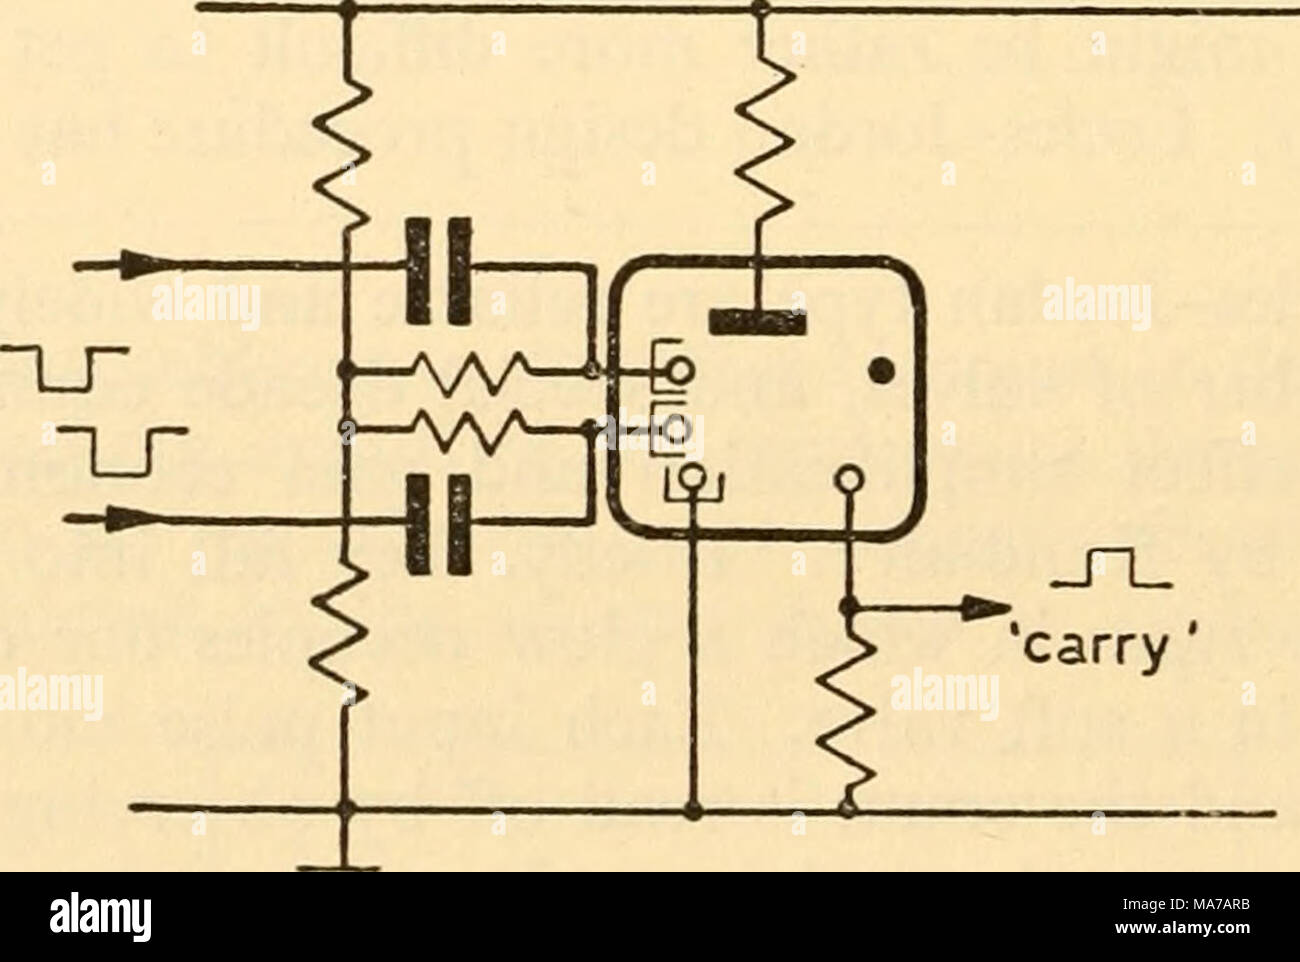 4112 Rc Wiring Diagram Car Receiver Control Circuit Moreover Together With Connection Ht 3 Stock Photos Images Page Alamy